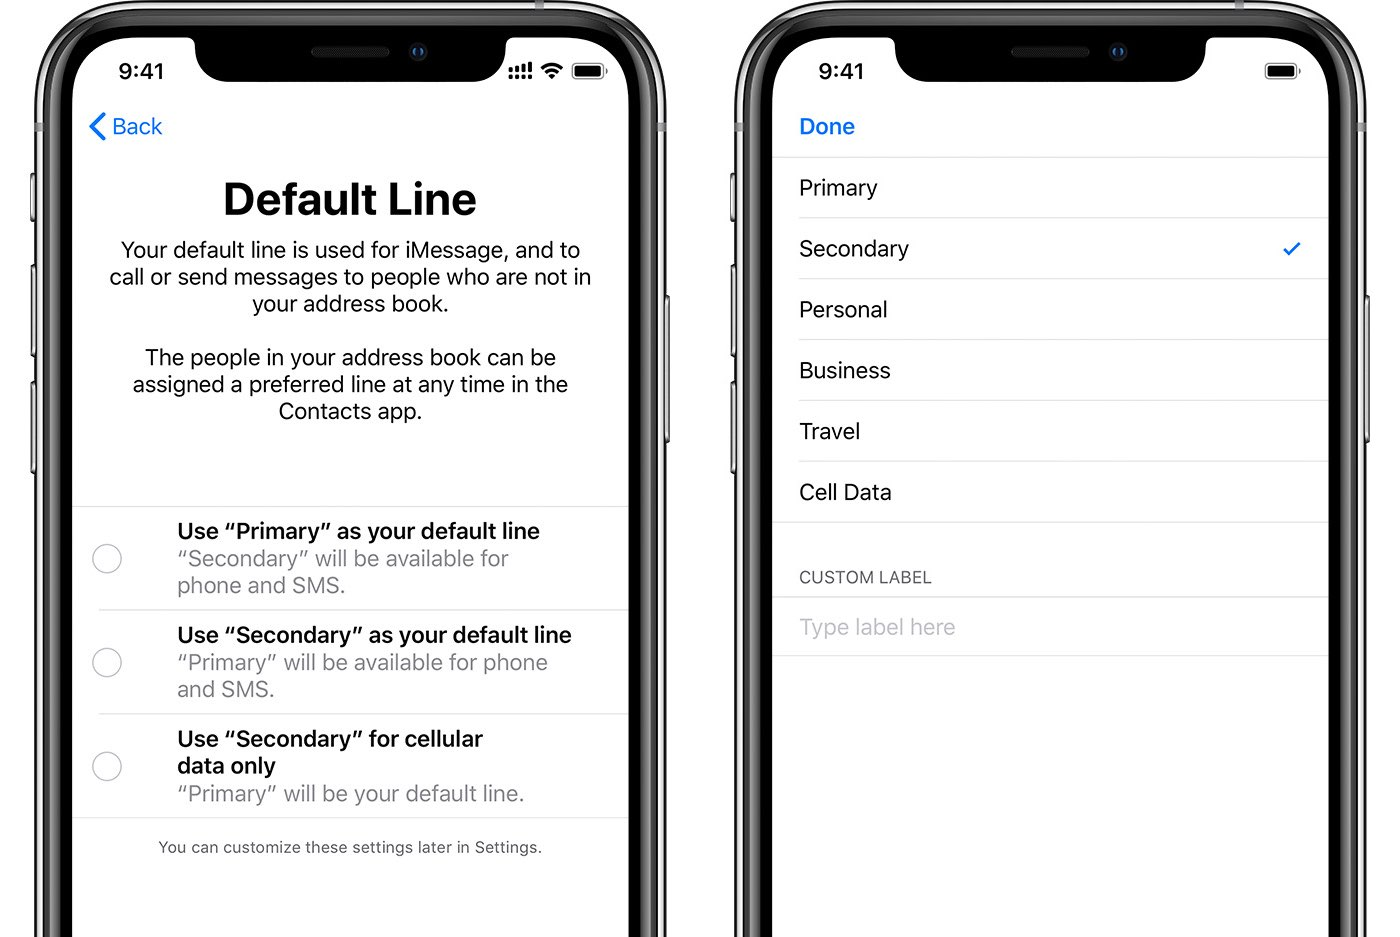 iPhone dual SIM support includes setting one line as your primary line